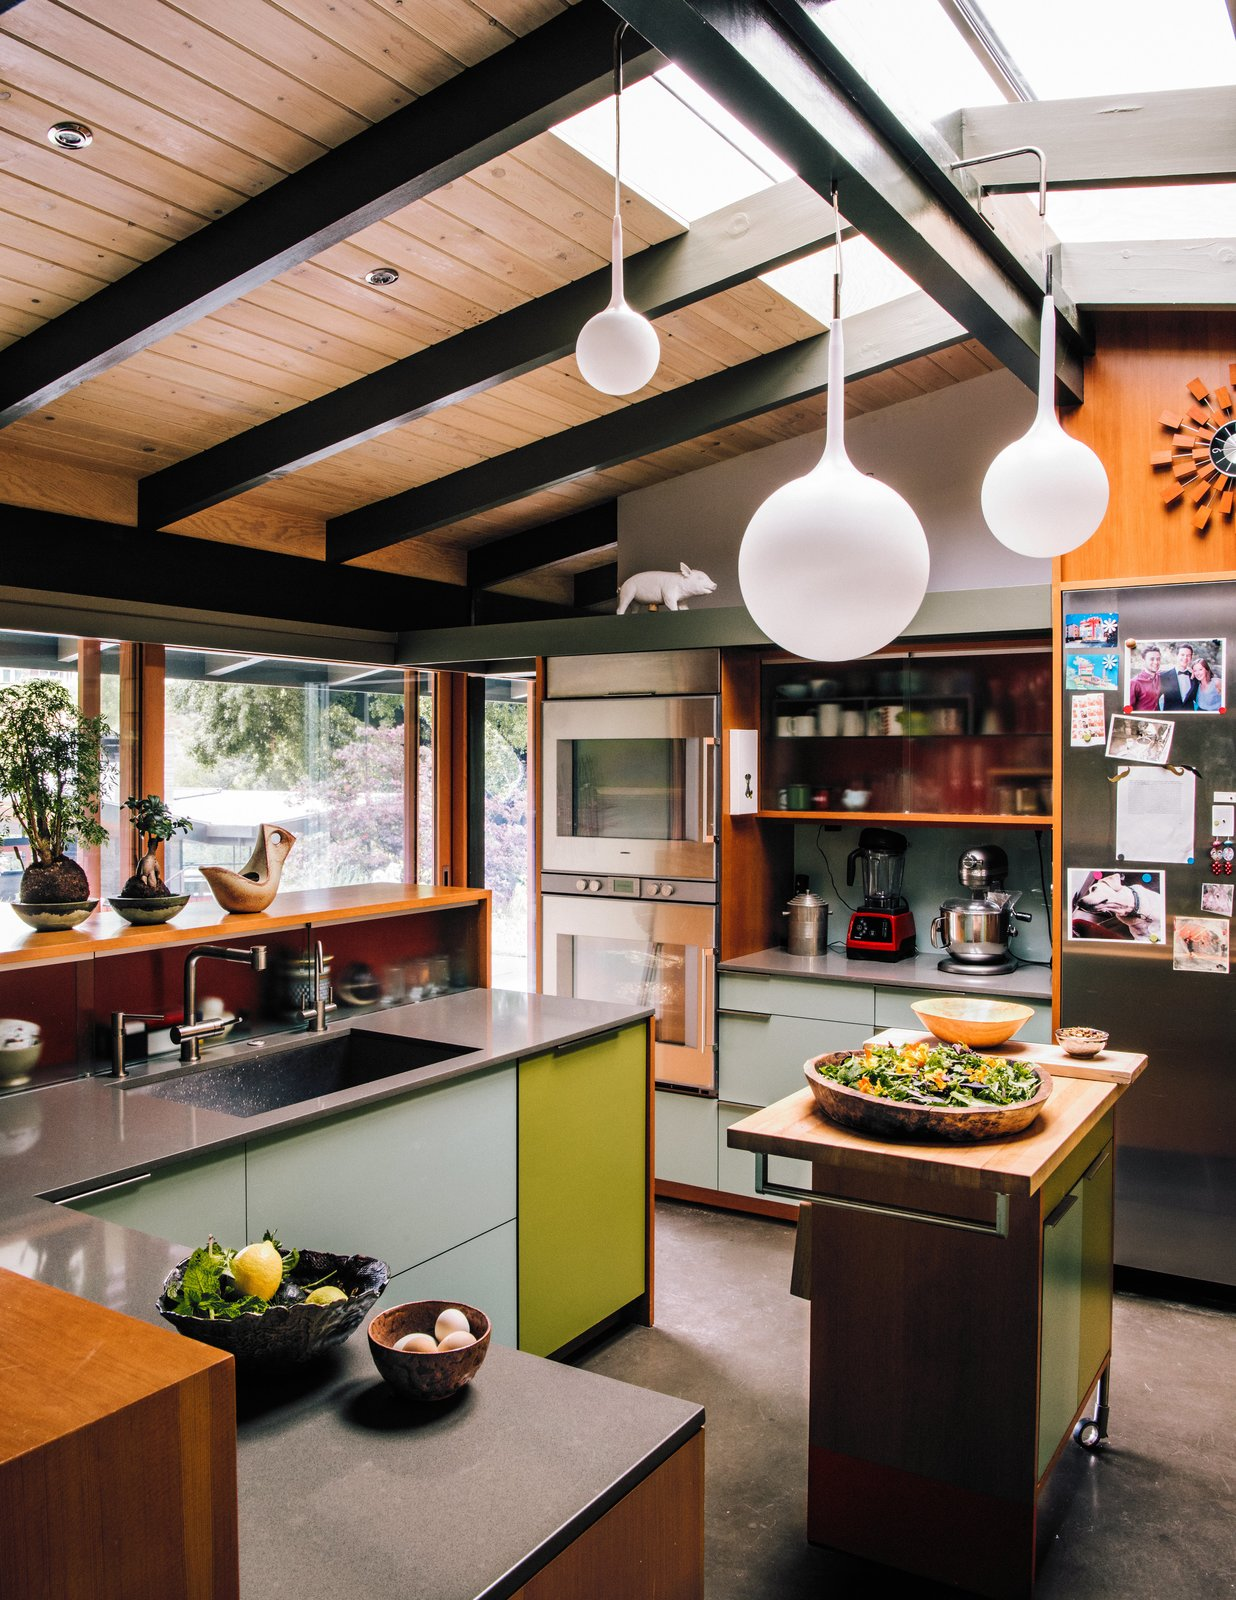 Tagged: Kitchen, Undermount Sink, Wall Oven, Cooktops, Refrigerator, Wood Counter, Colorful Cabinet, Concrete Floor, Ceiling Lighting, and Pendant Lighting.  Photo 2 of 14 in Creative Revival of a Modernist Gem